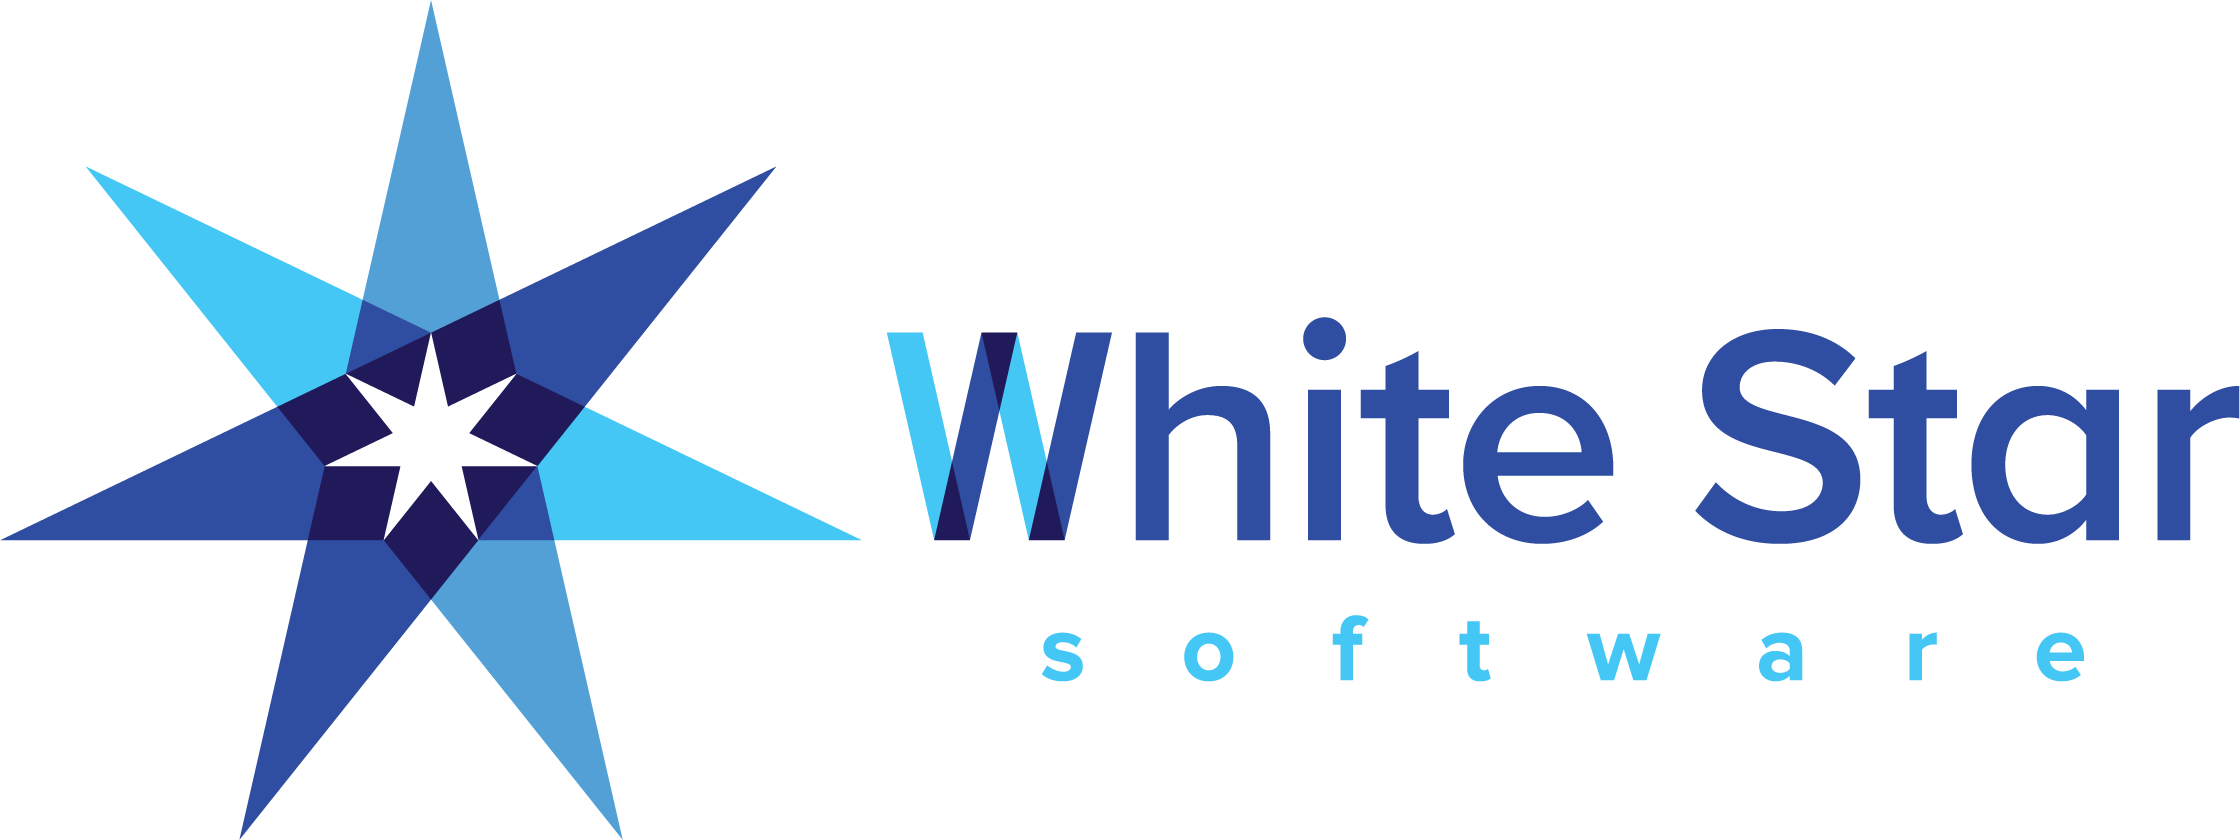 White Star Software